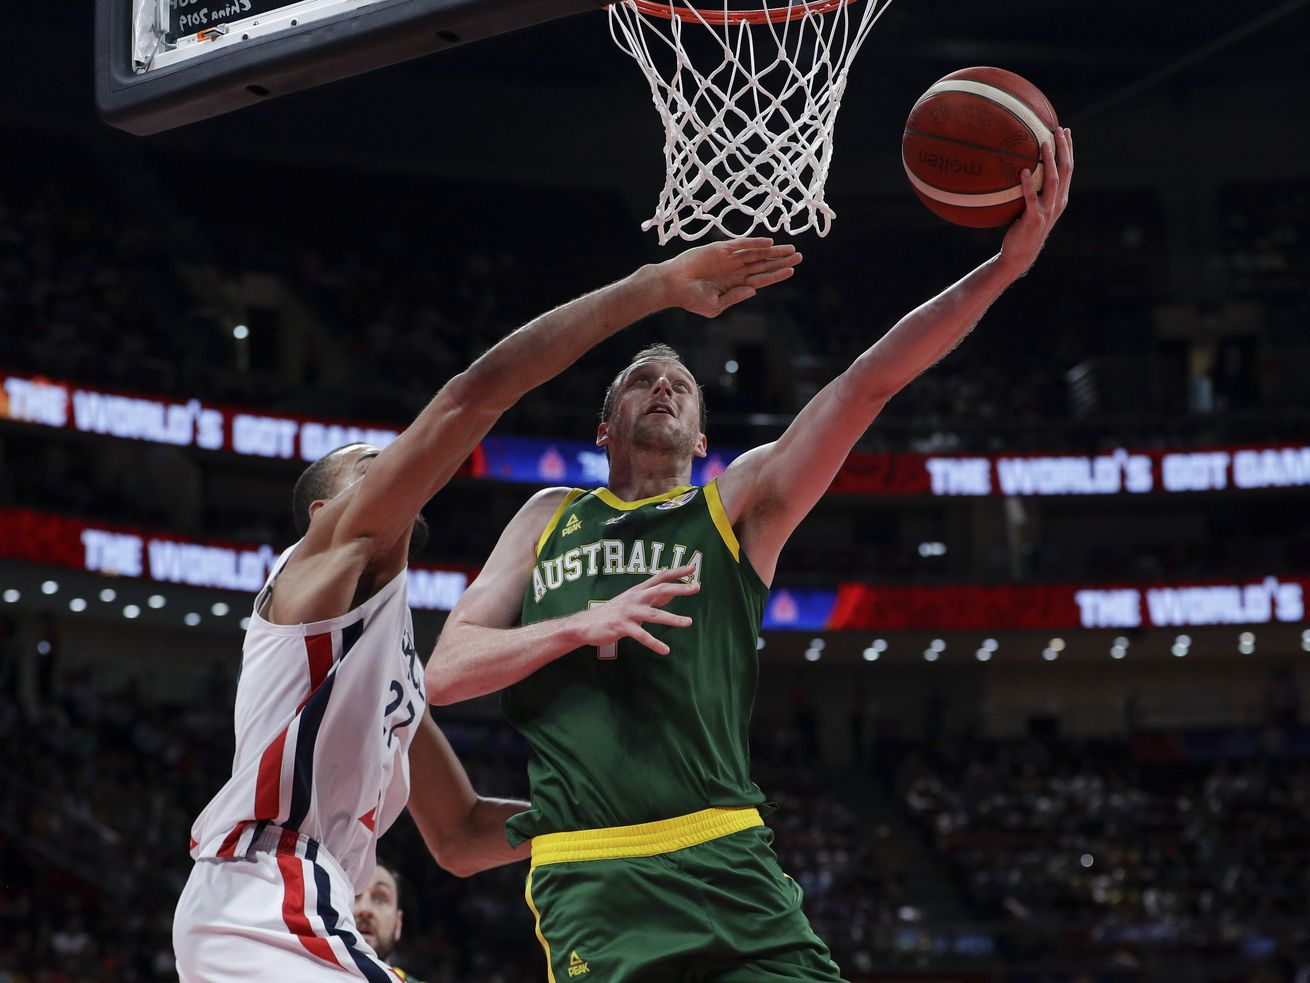 Rudy Gobert, France outlast Joe Ingles, Andrew Bogut, Australia for 3rd place in FIBA World Cup; Ricky Rubio leads Spain to title